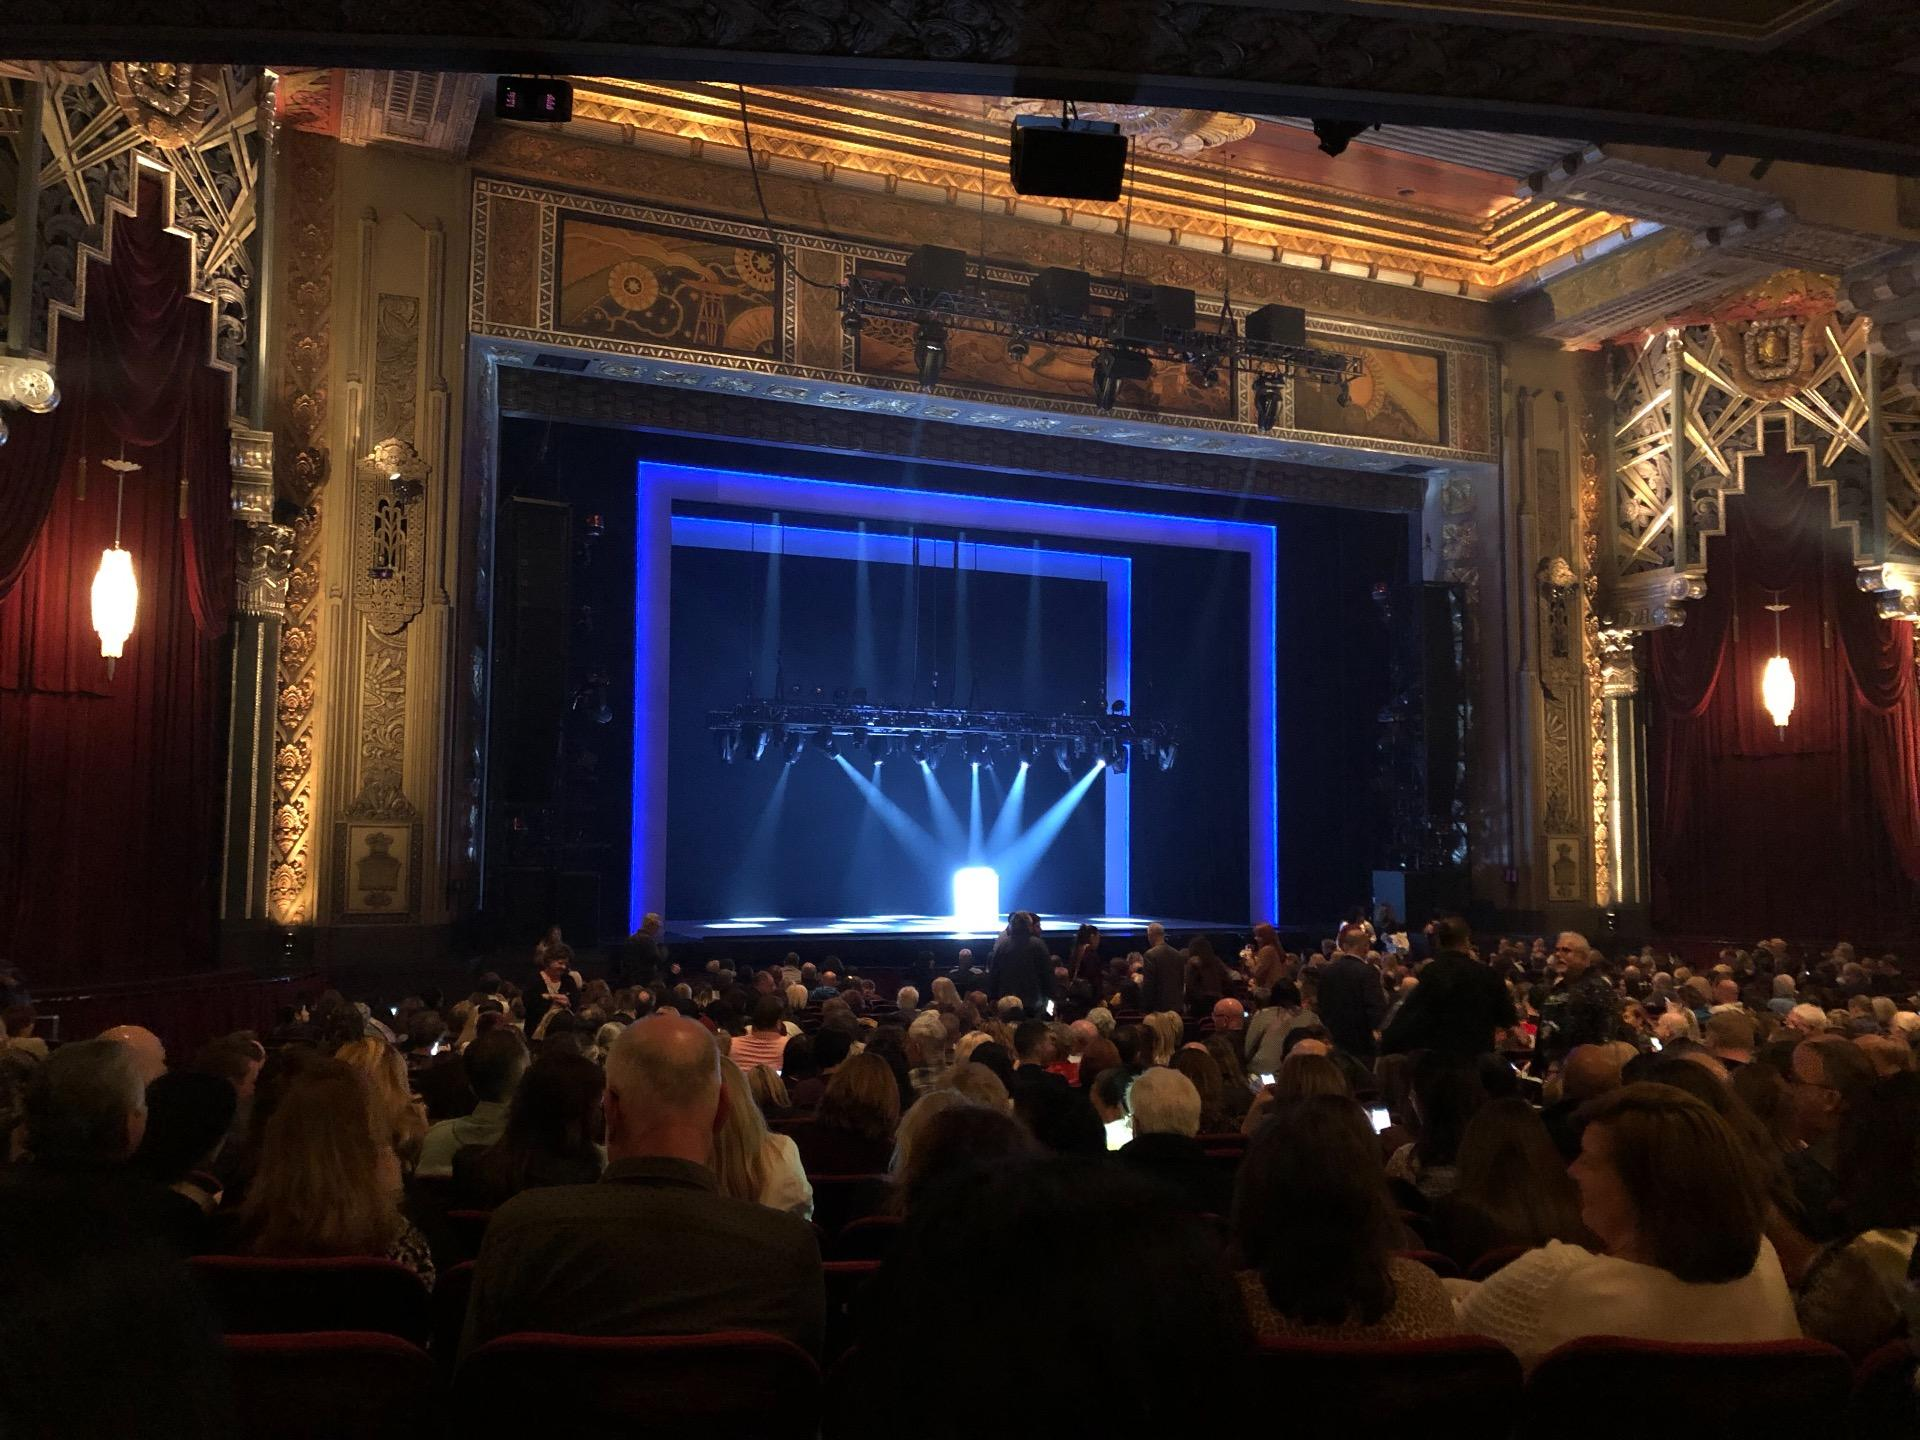 Hollywood Pantages Theatre Section Orchestra LC Row PP Seat 313